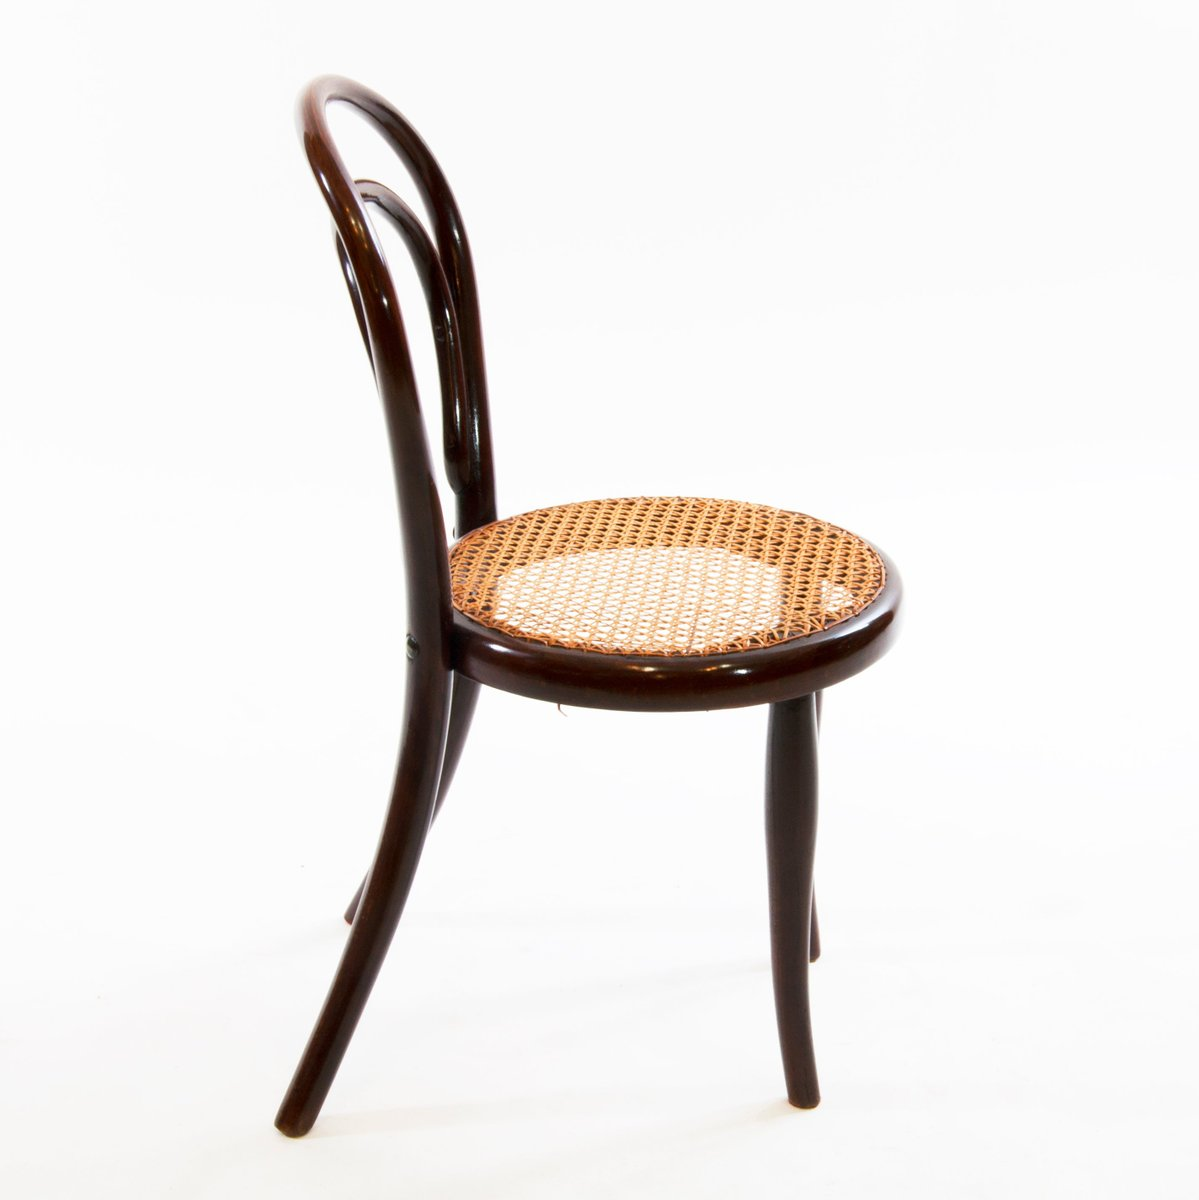 1 Child Bentwood Chair from Thonet  sc 1 st  Pamono & Antique No. 1 Child Bentwood Chair from Thonet for sale at Pamono